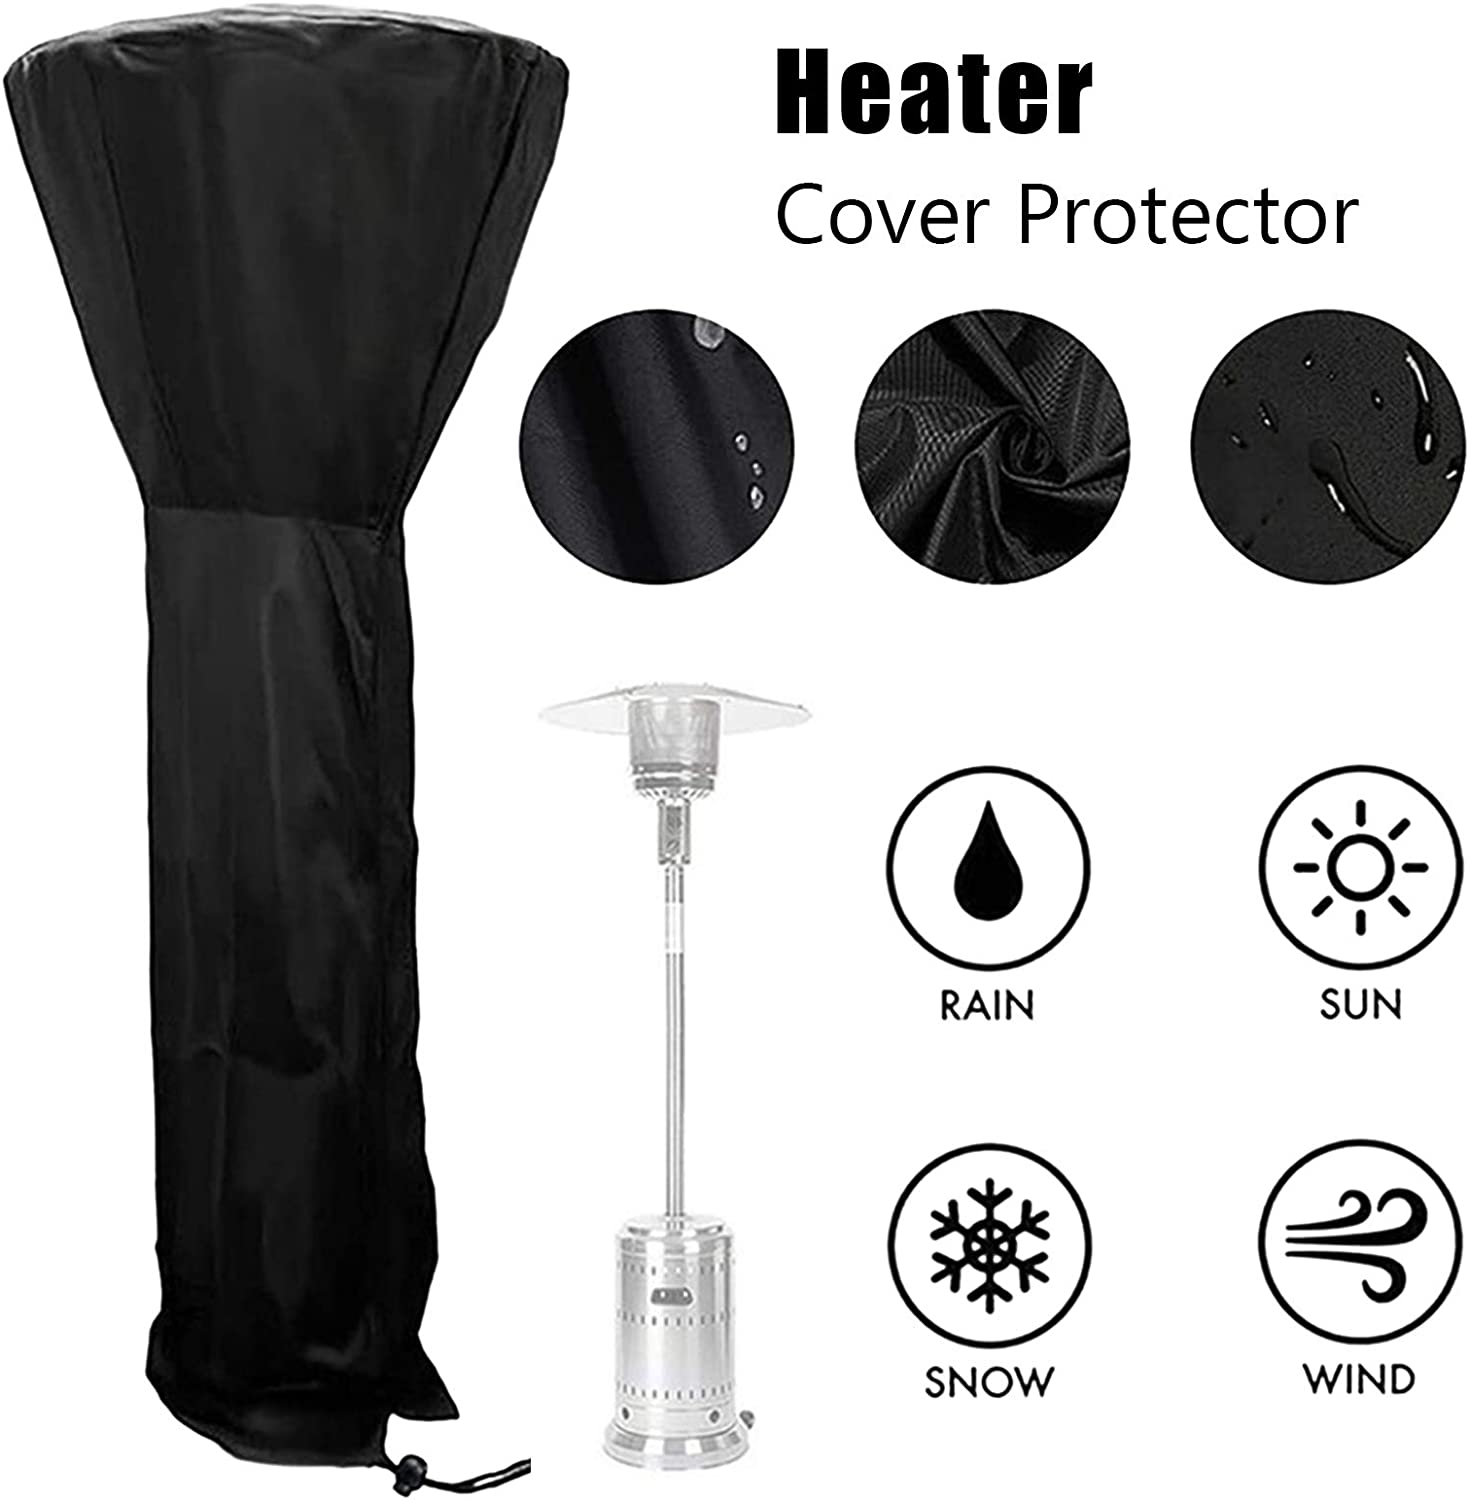 Patio Heater Covers Black 420D Oxford Fabric Waterproof with Zipper Outdoor Heater Protection with Storage Bag